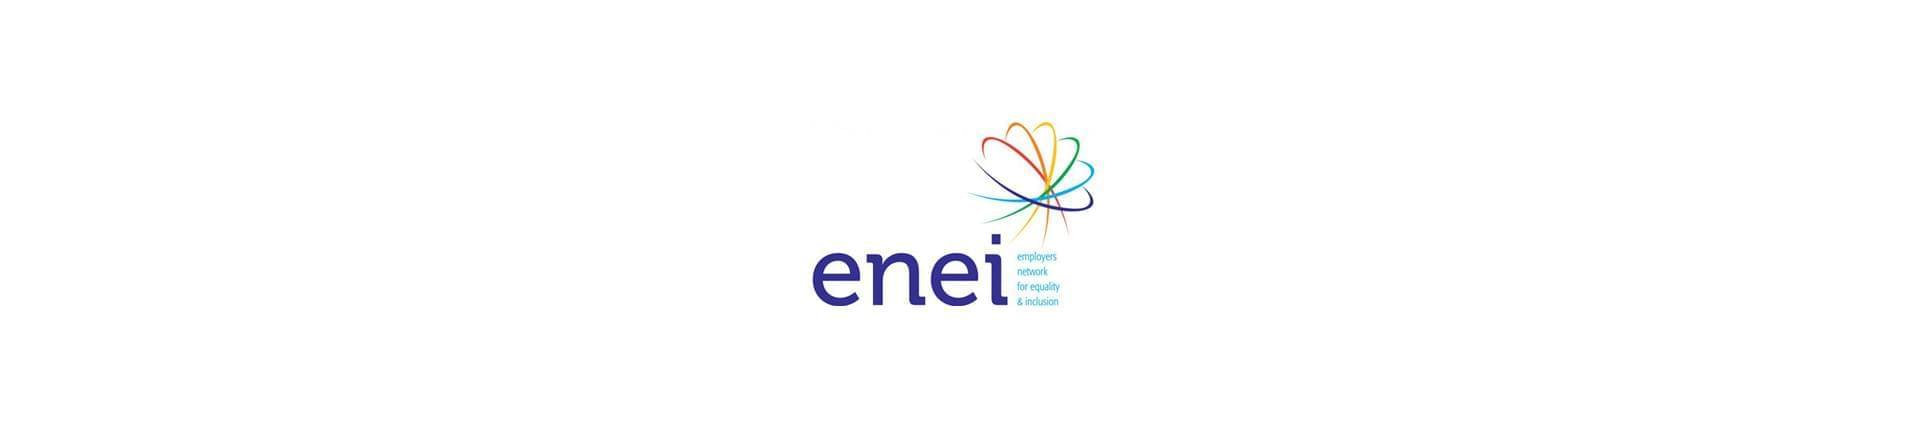 enei logo with the text 'employers network for equality and inclusion'.